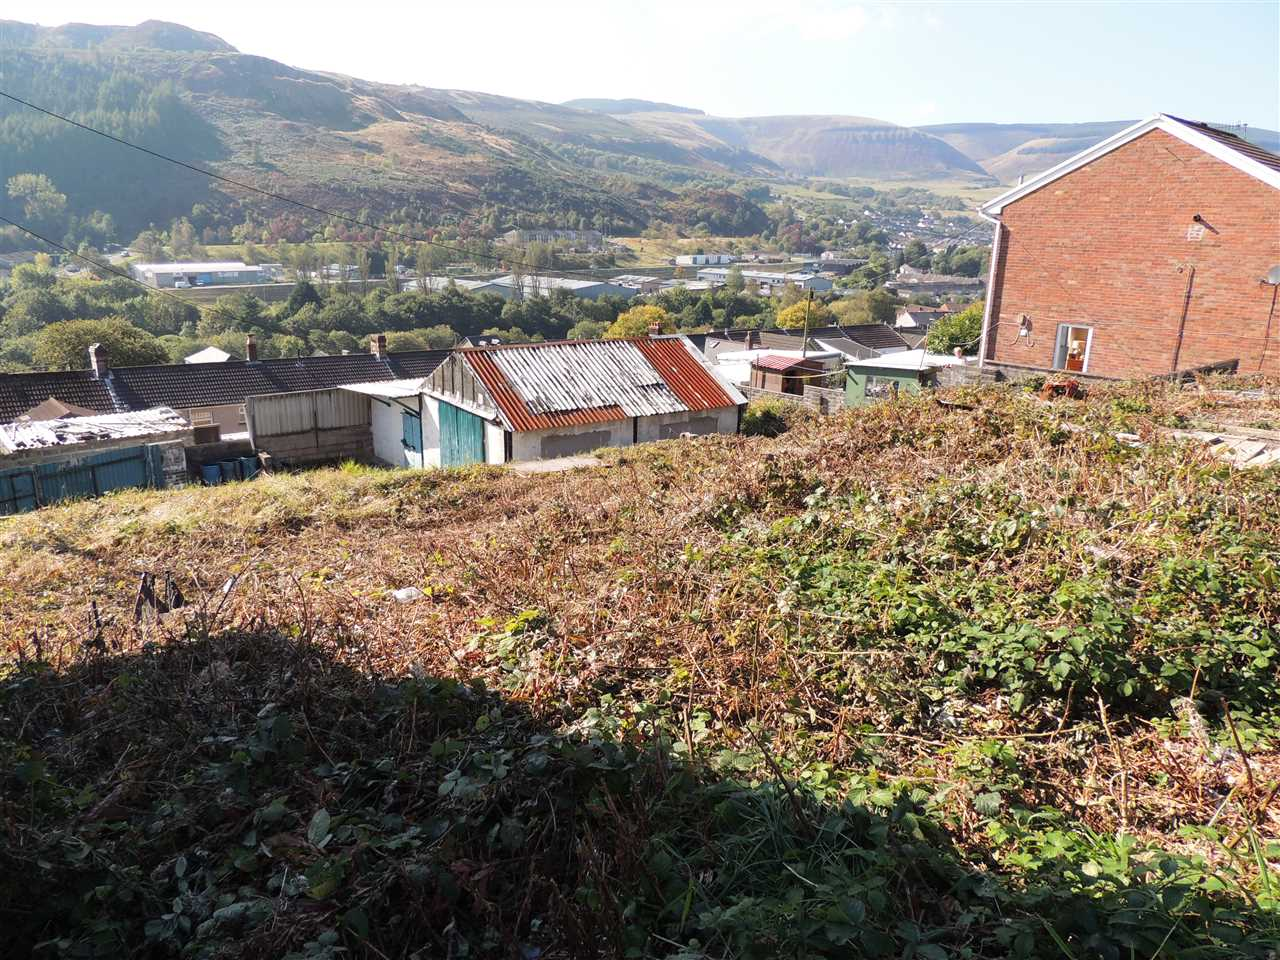 Land for sale land bodringallt terrace pentre cf cf41 for The terrace land and house